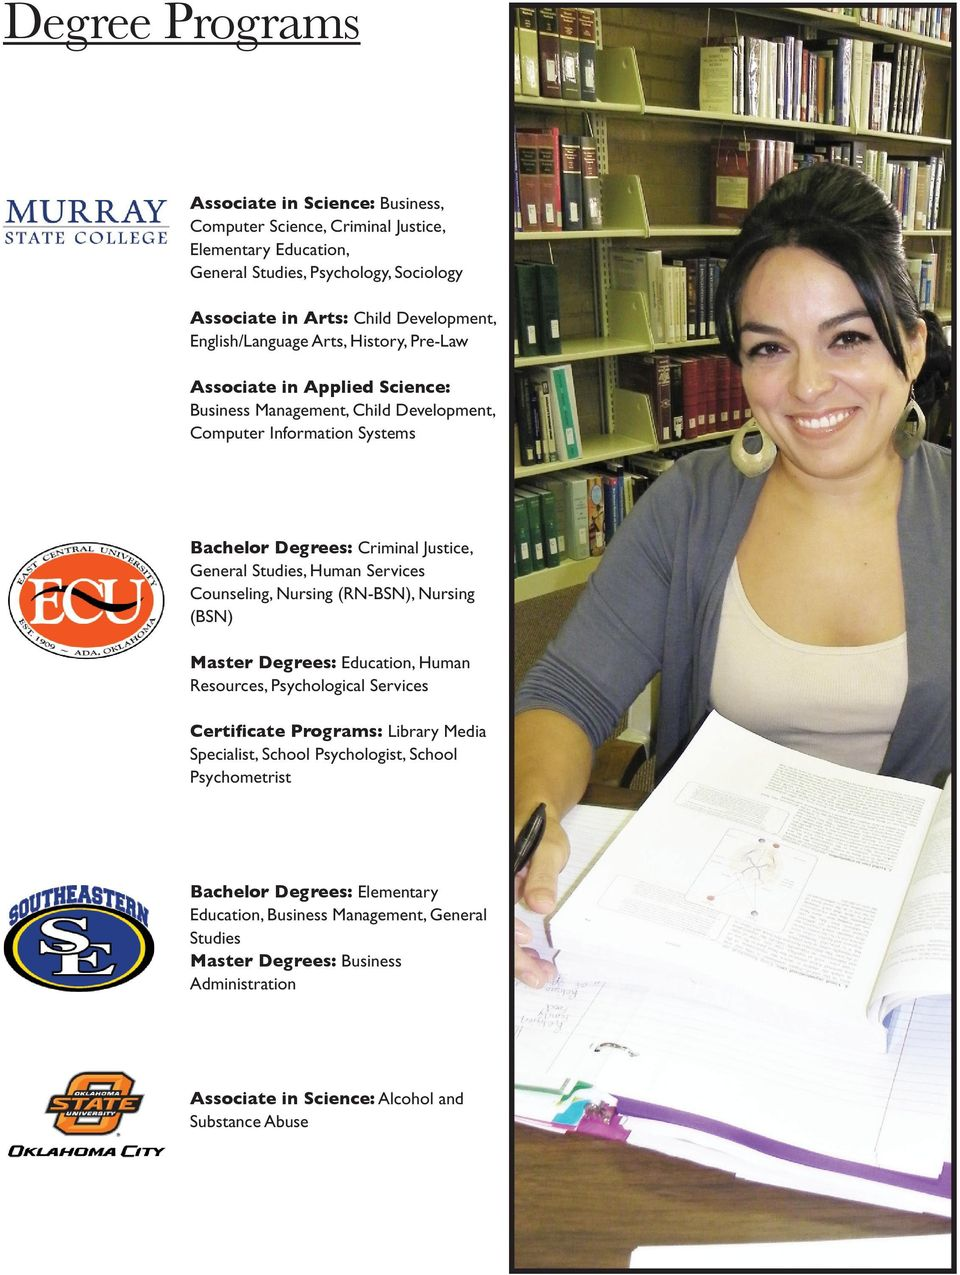 Studies, Human Services Counseling, Nursing (RN-BSN), Nursing (BSN) Master Degrees: Education, Human Resources, Psychological Services Certificate Programs: Library Media Specialist, School